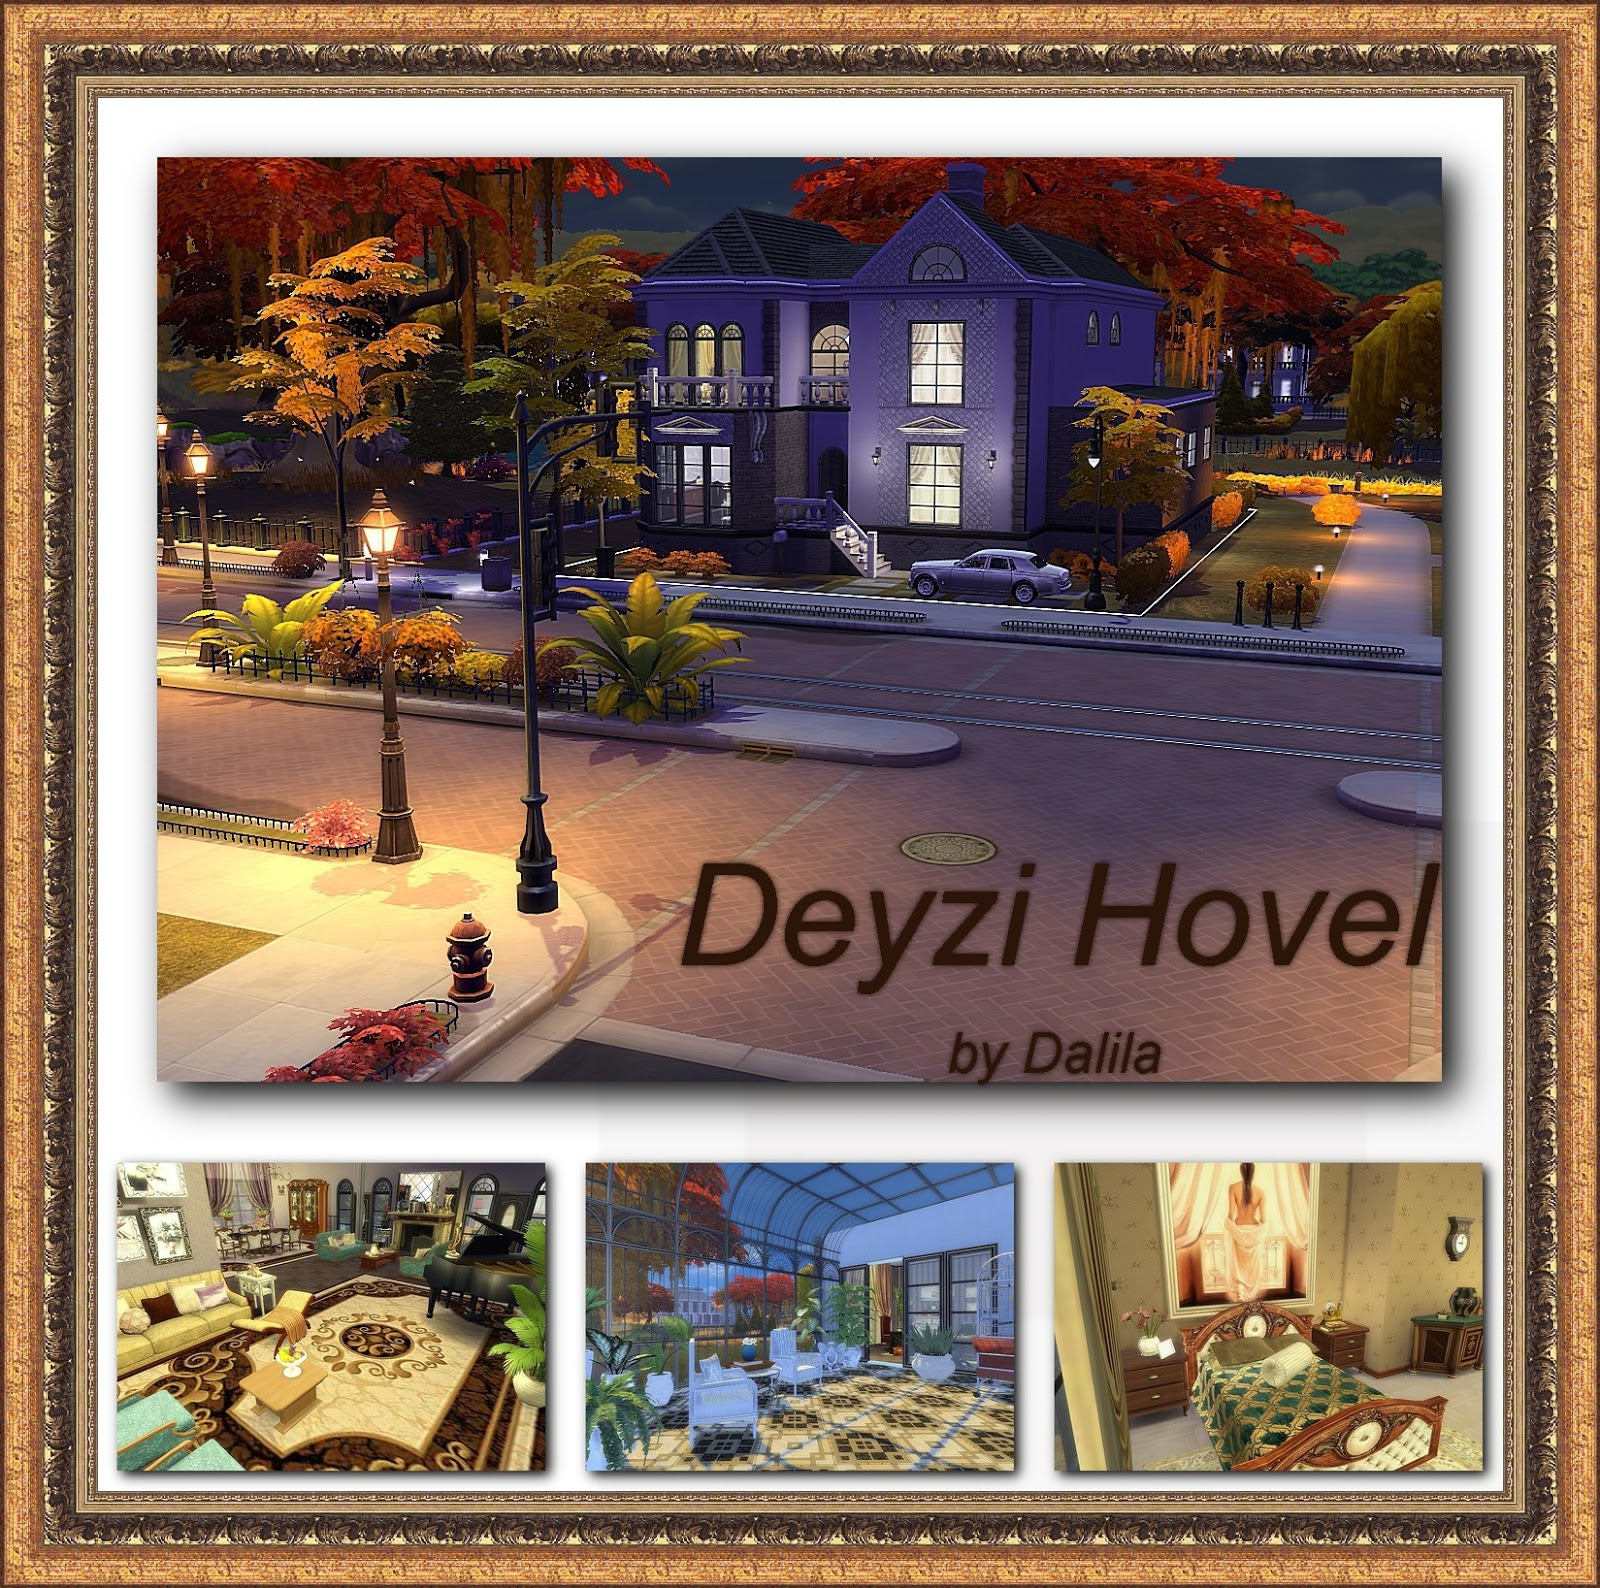 Deyzi Hovel by Dalila